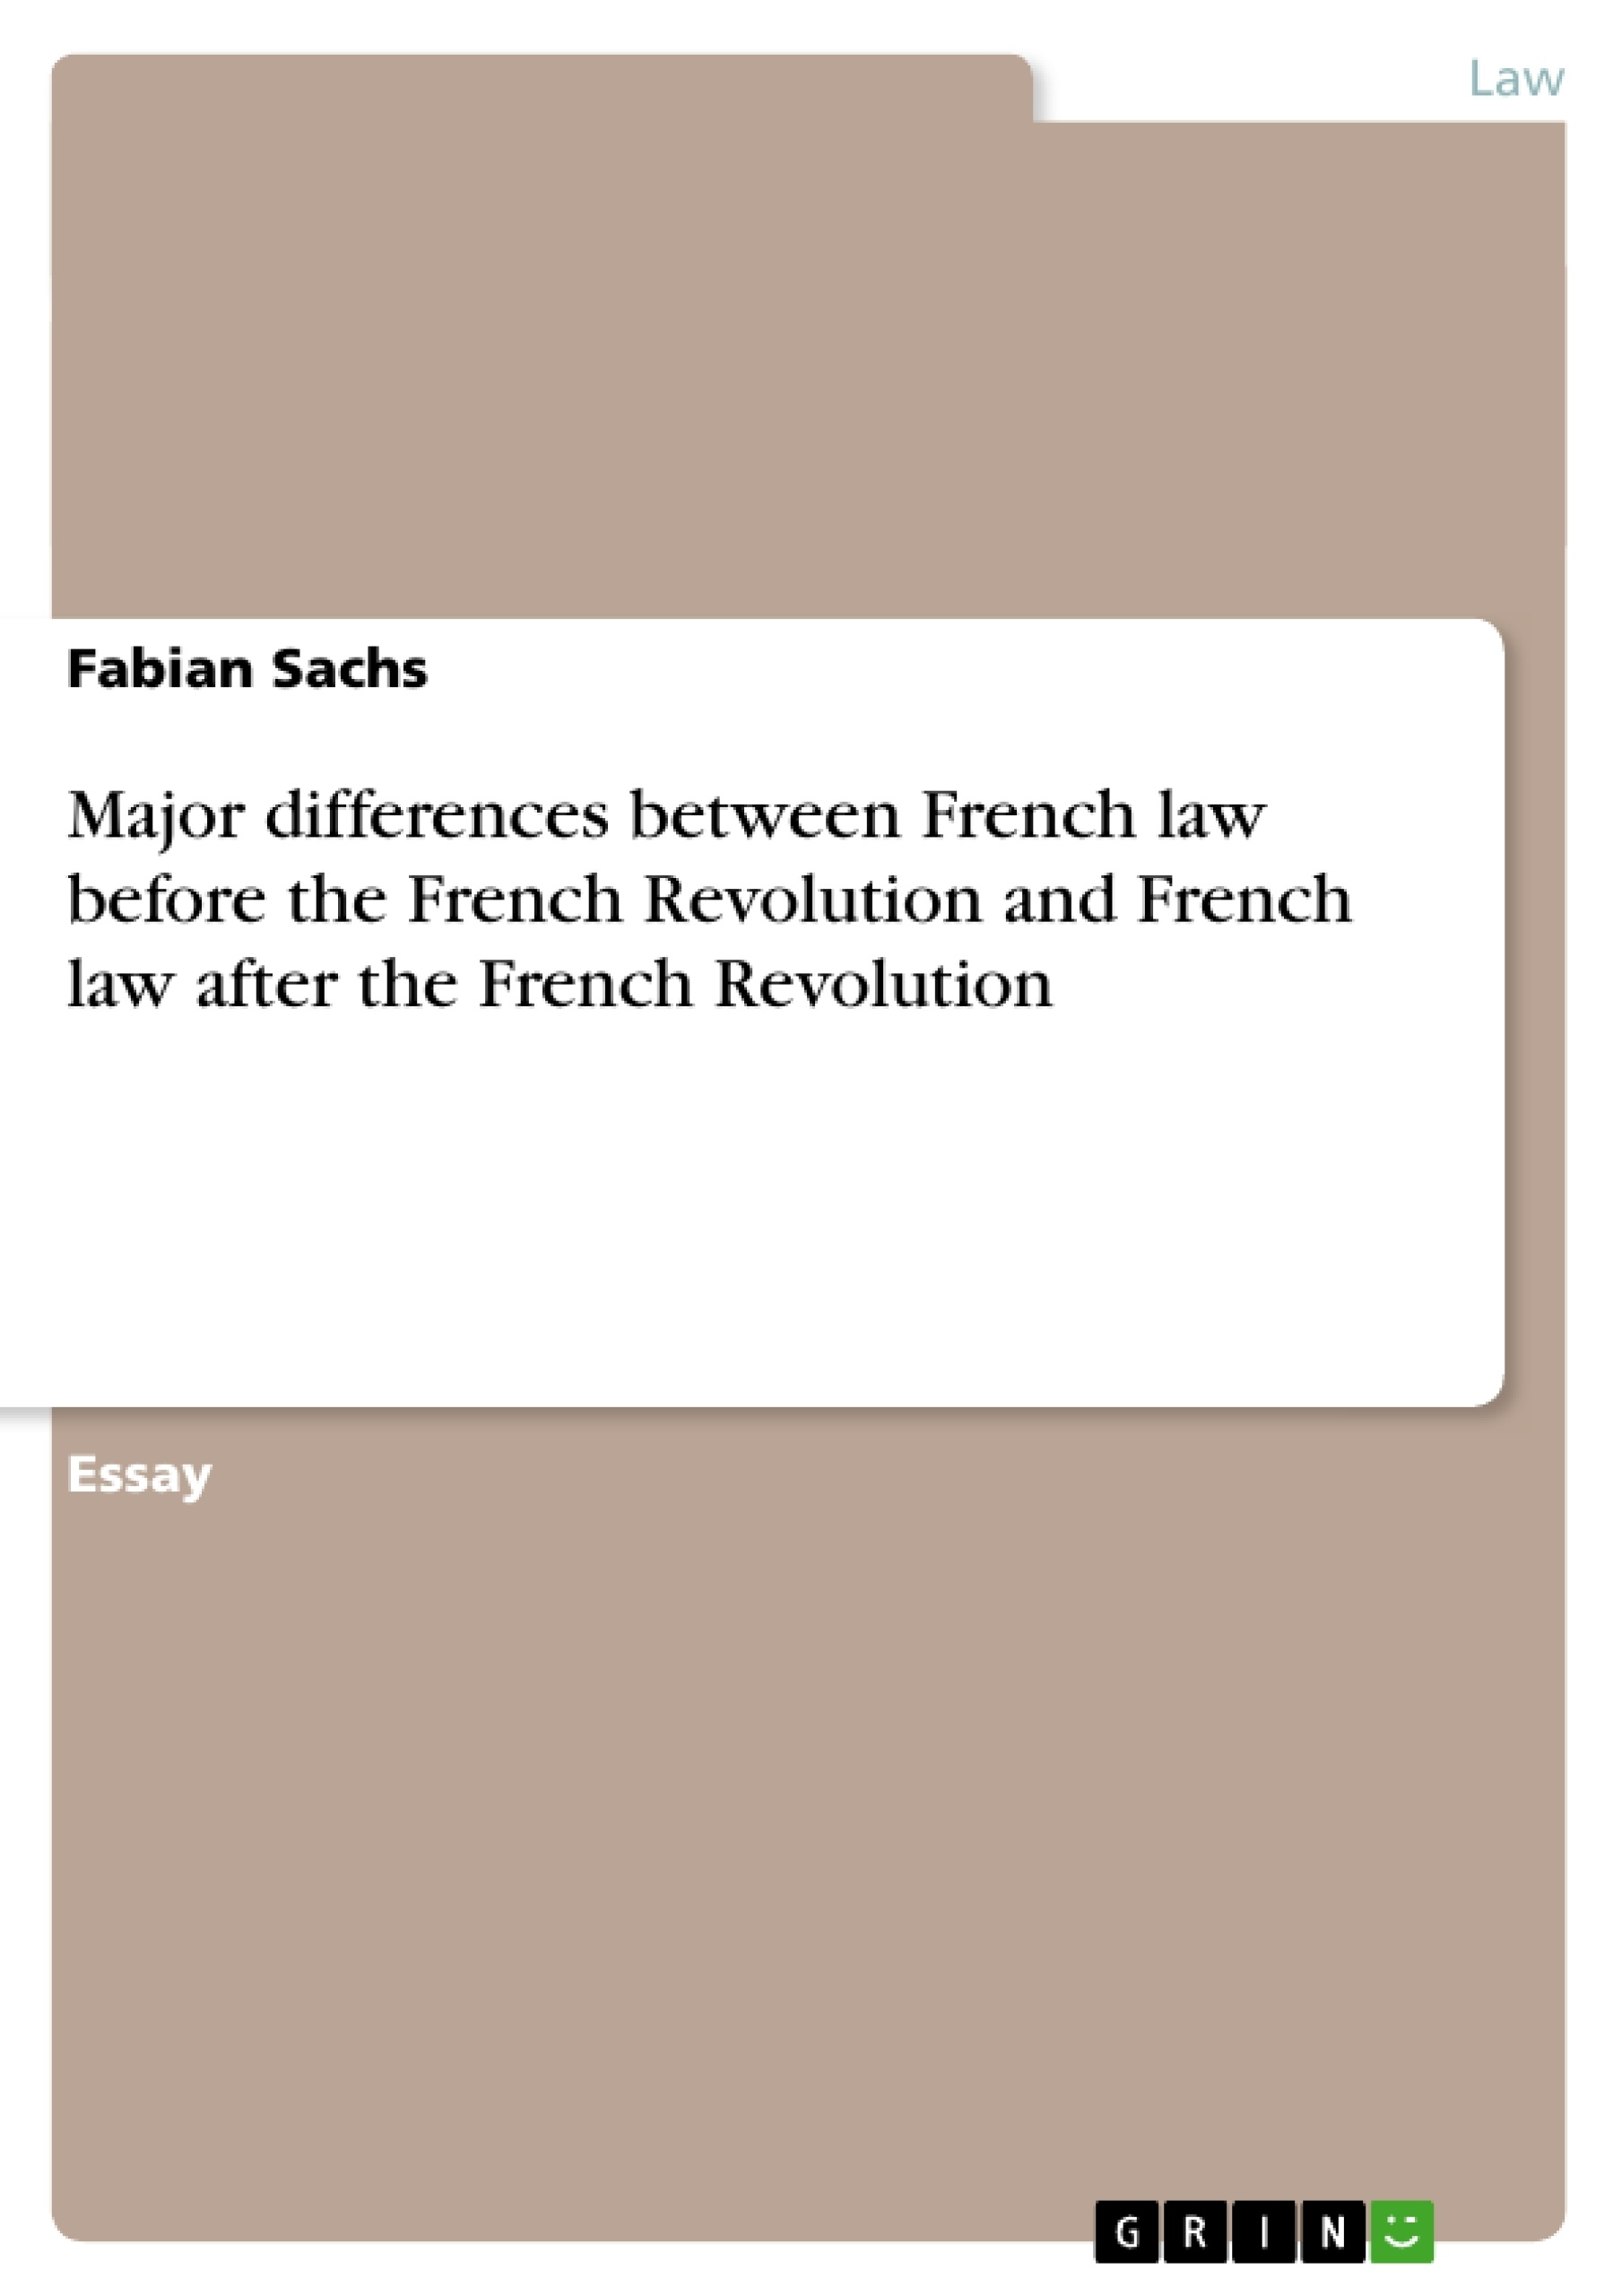 essay french revolution revolution social causes essay example of  major differences between french law before the french revolution upload your own papers earn money and